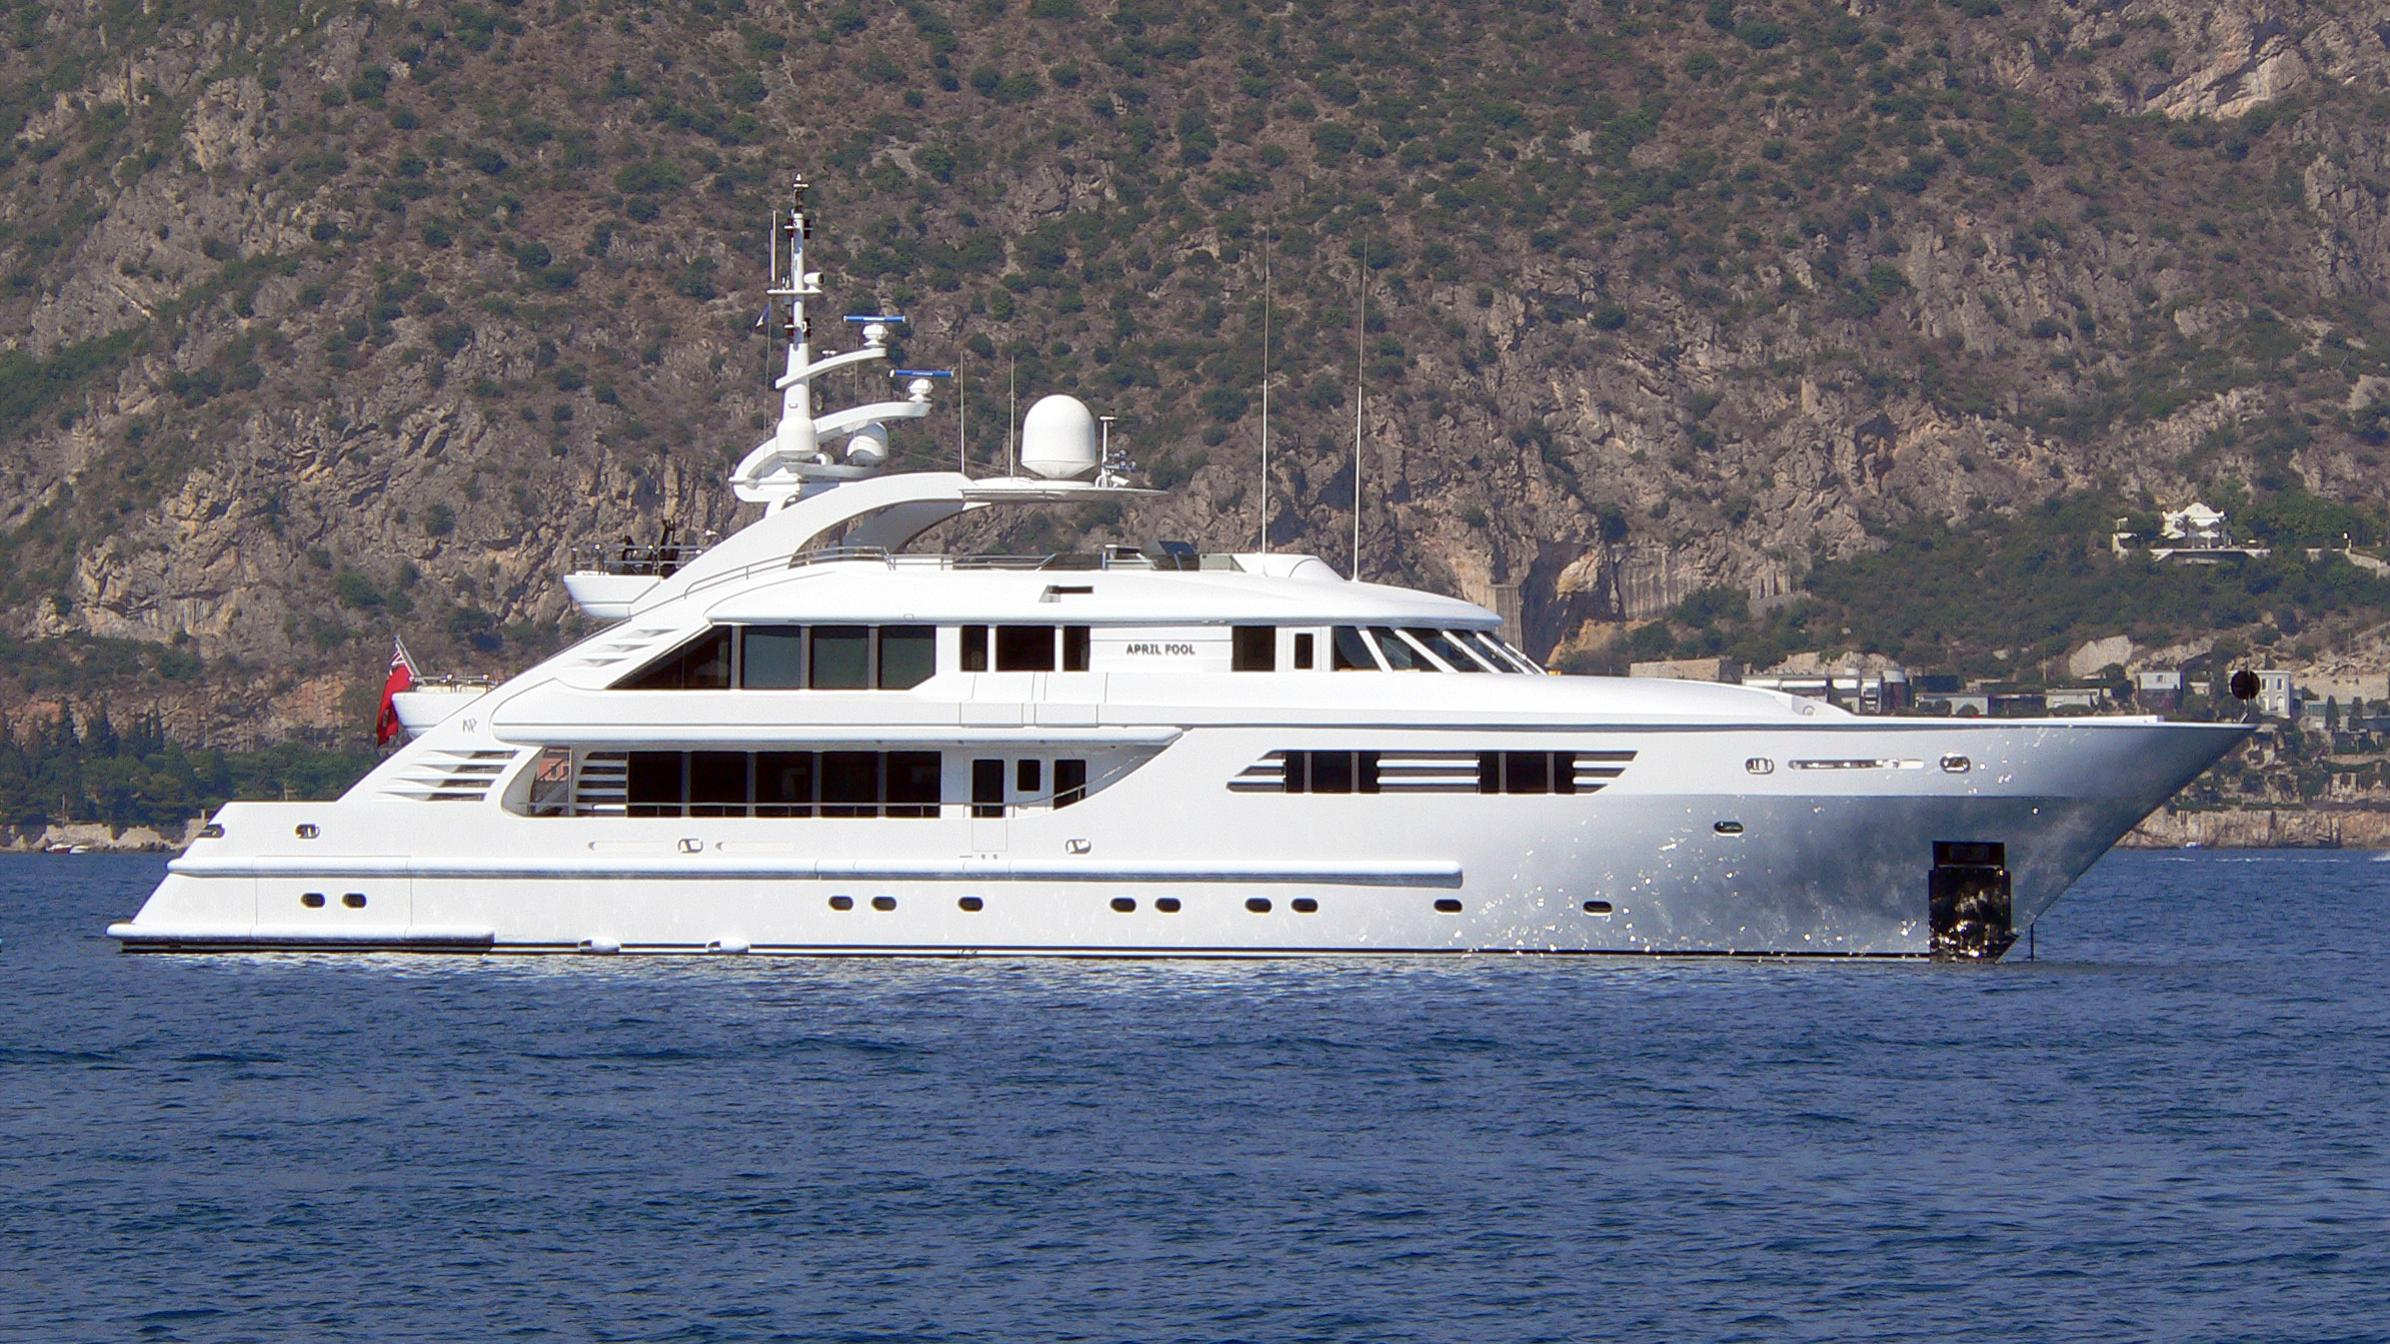 lady mm 360 sonka motoryacht isa yachts 47m 2003 profile before refit